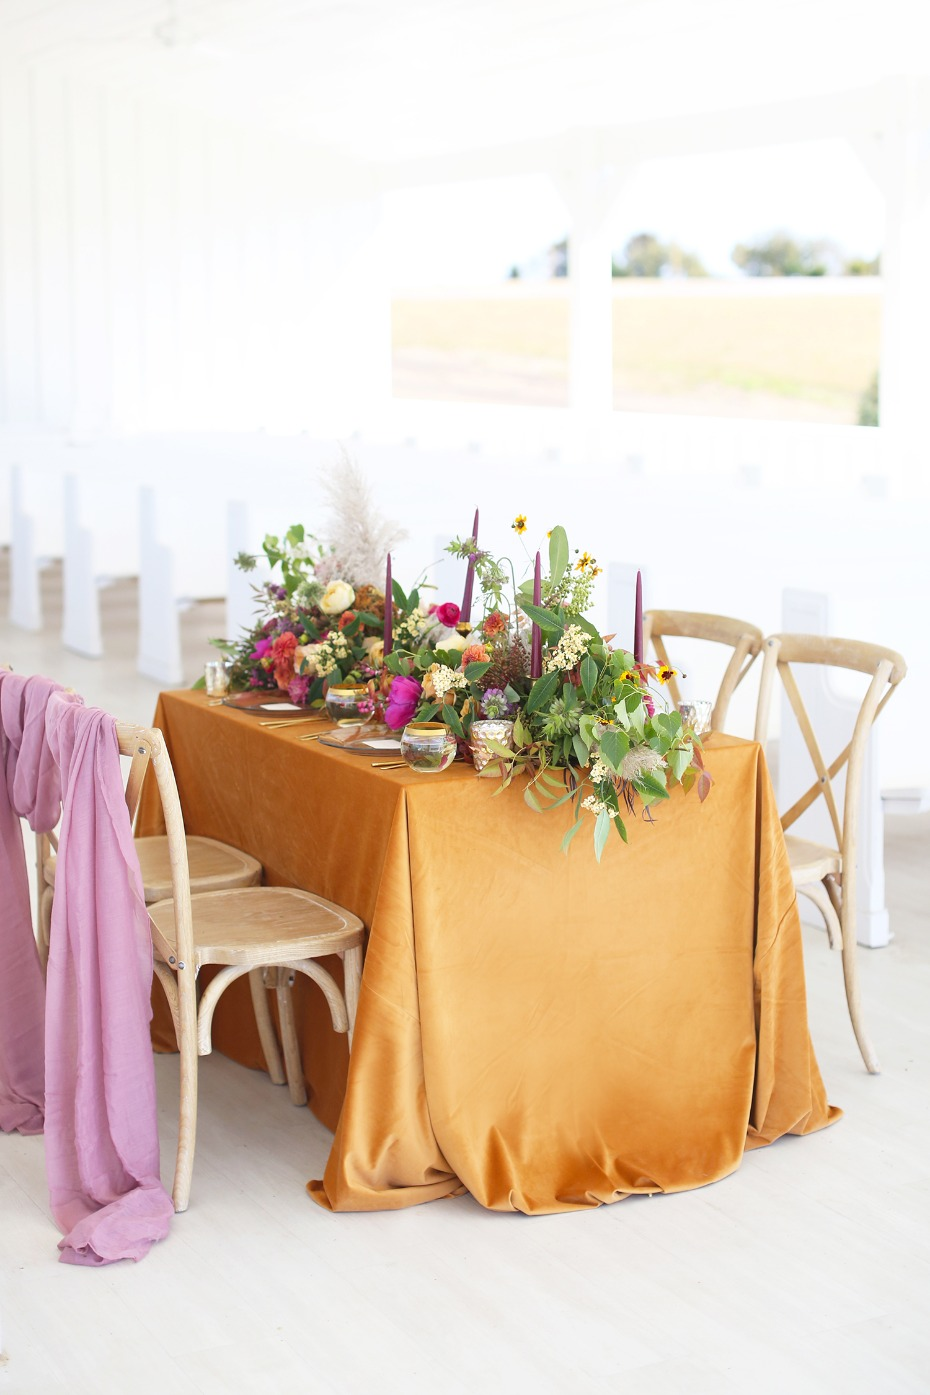 Jewel-tone table decor